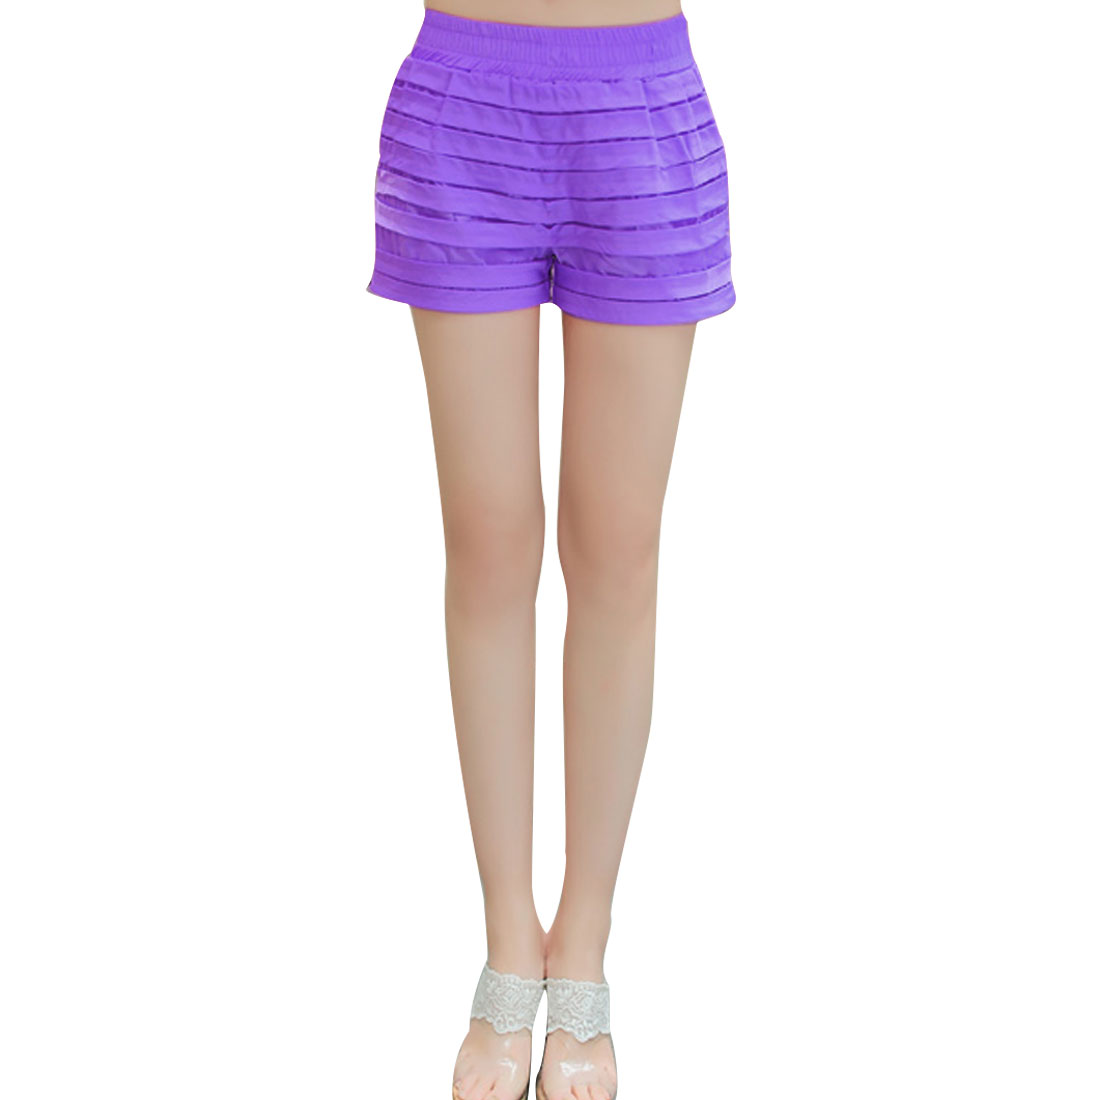 Ladies High Waist Slant Pockets Thick Fashional Shorts Purple XS